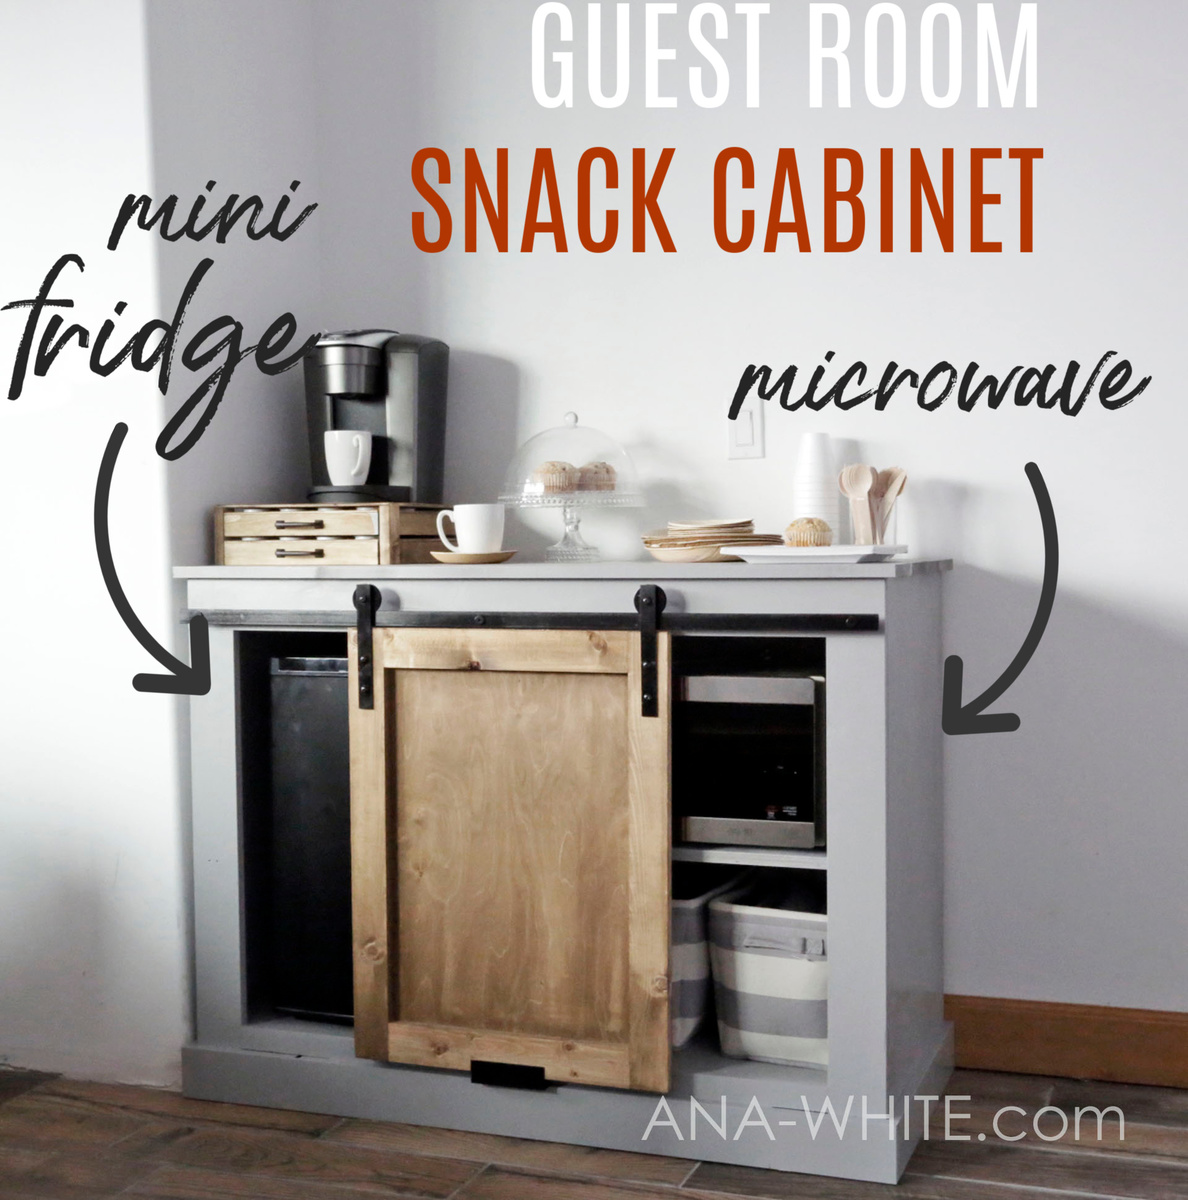 Ana White Barn Door Cabinet With Mini Fridge And Microwave Diy Projects